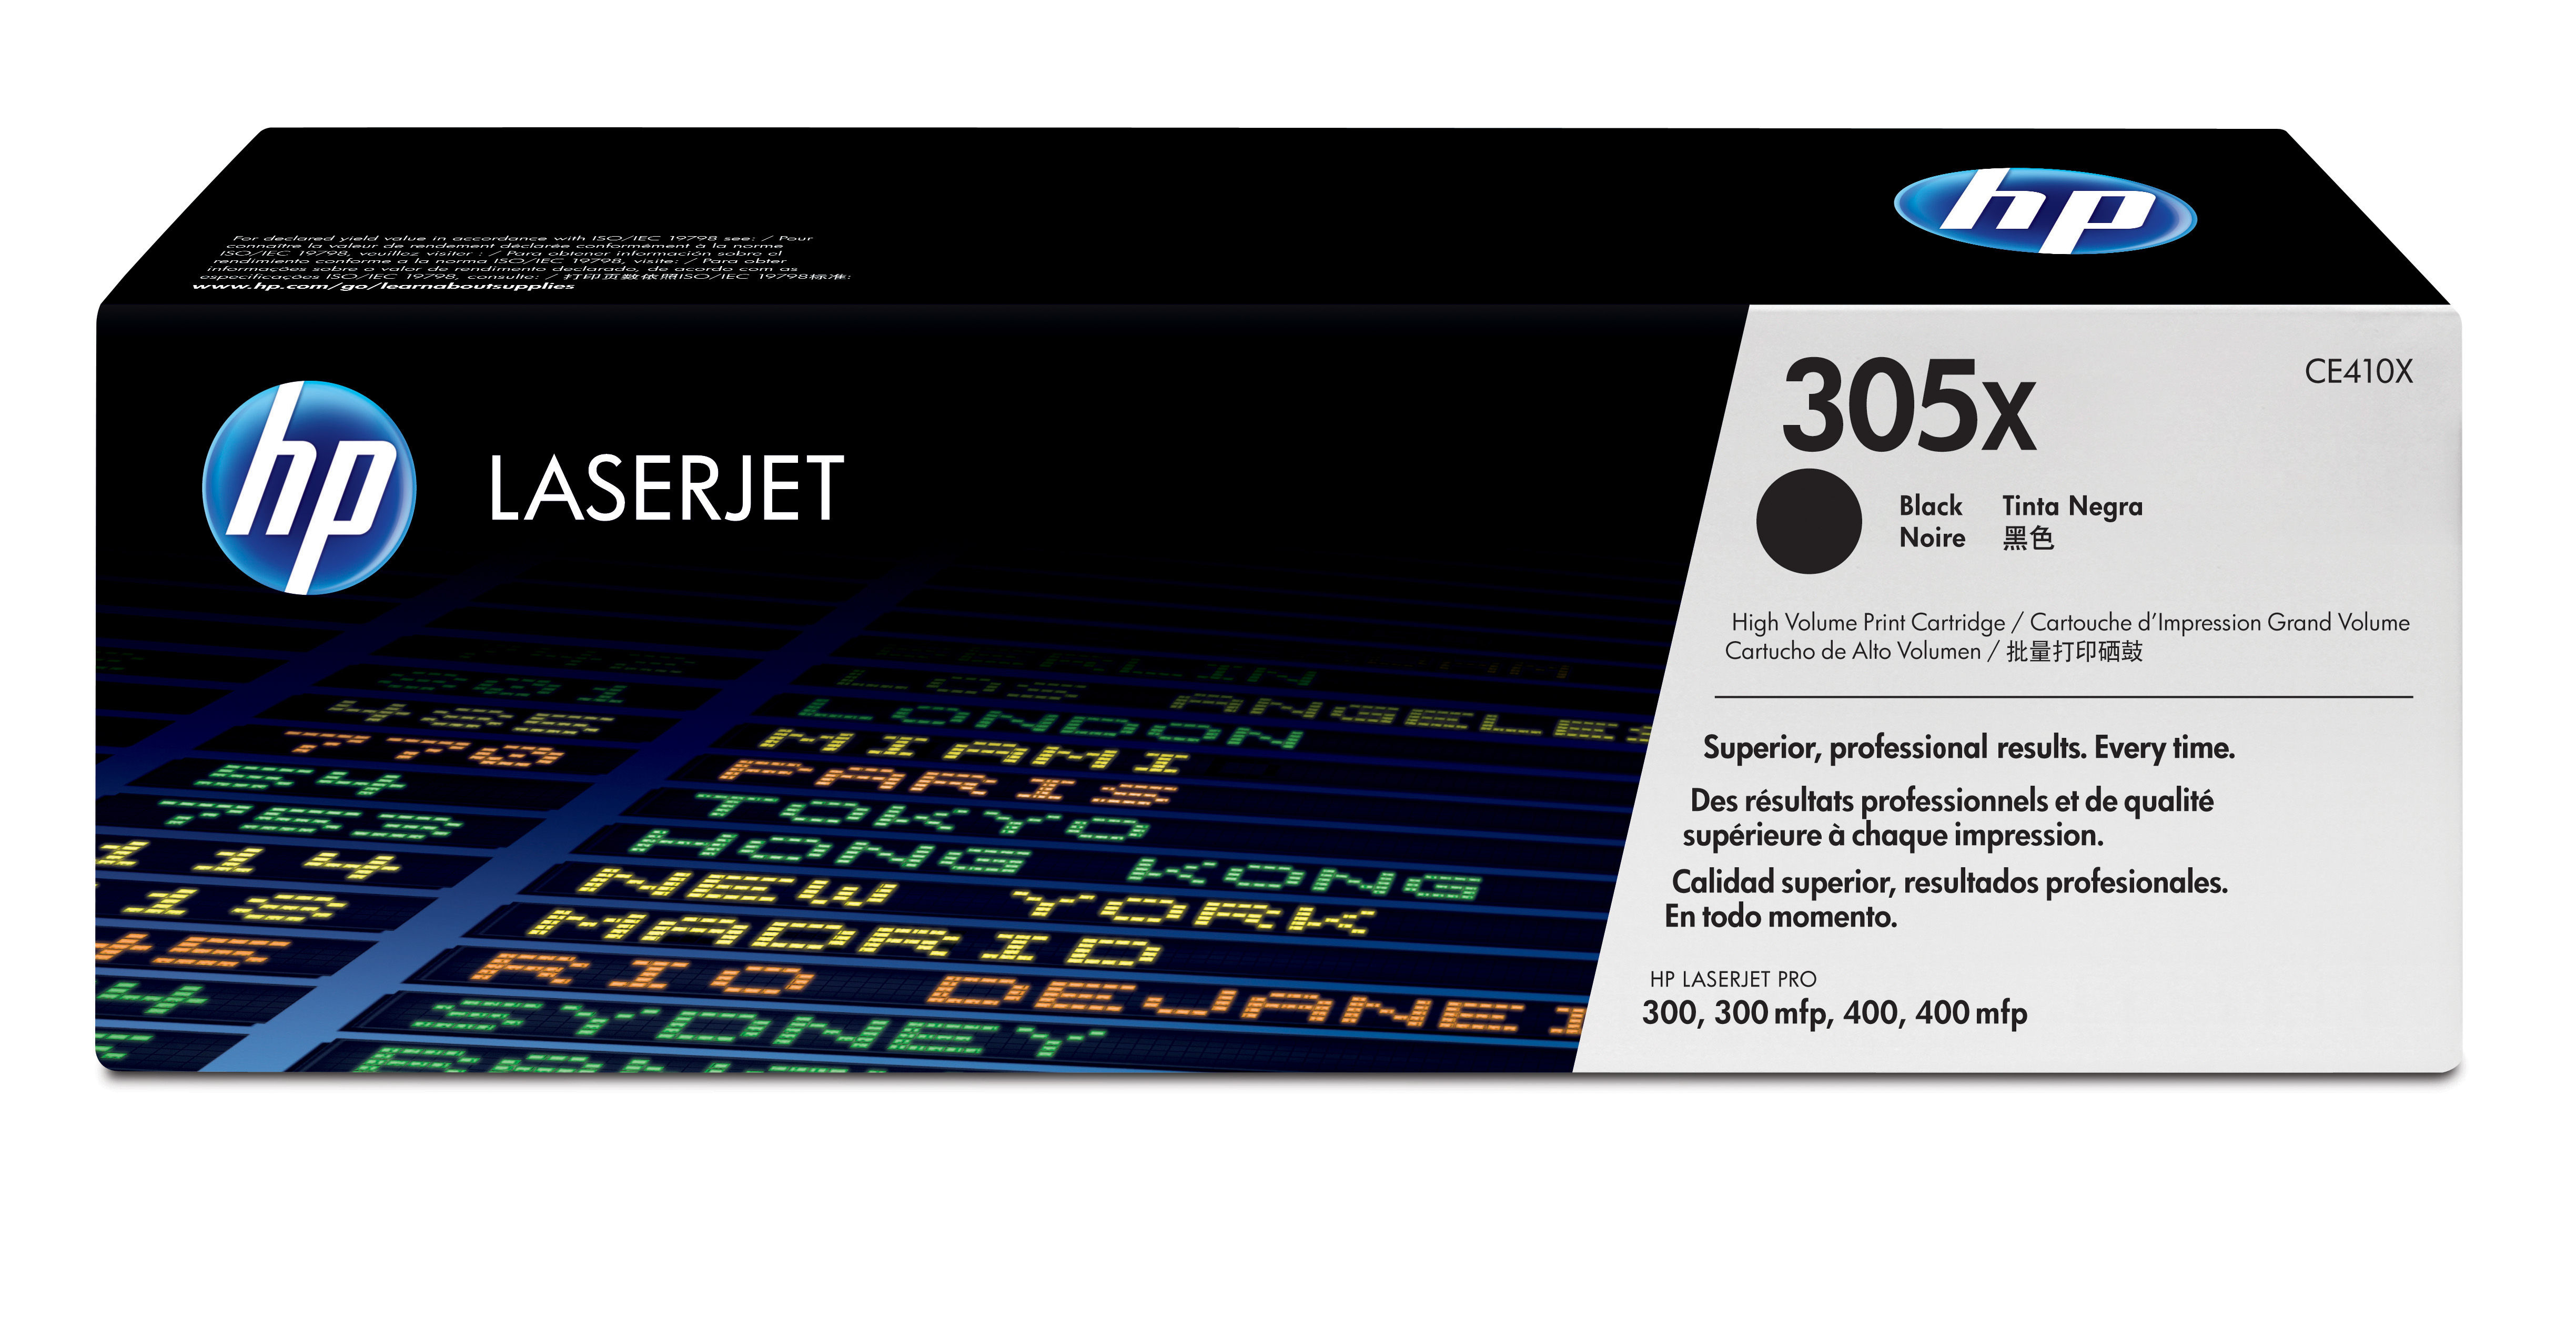 Ce410x HP Hp 305x Black Toner 4000 Pages - AD01